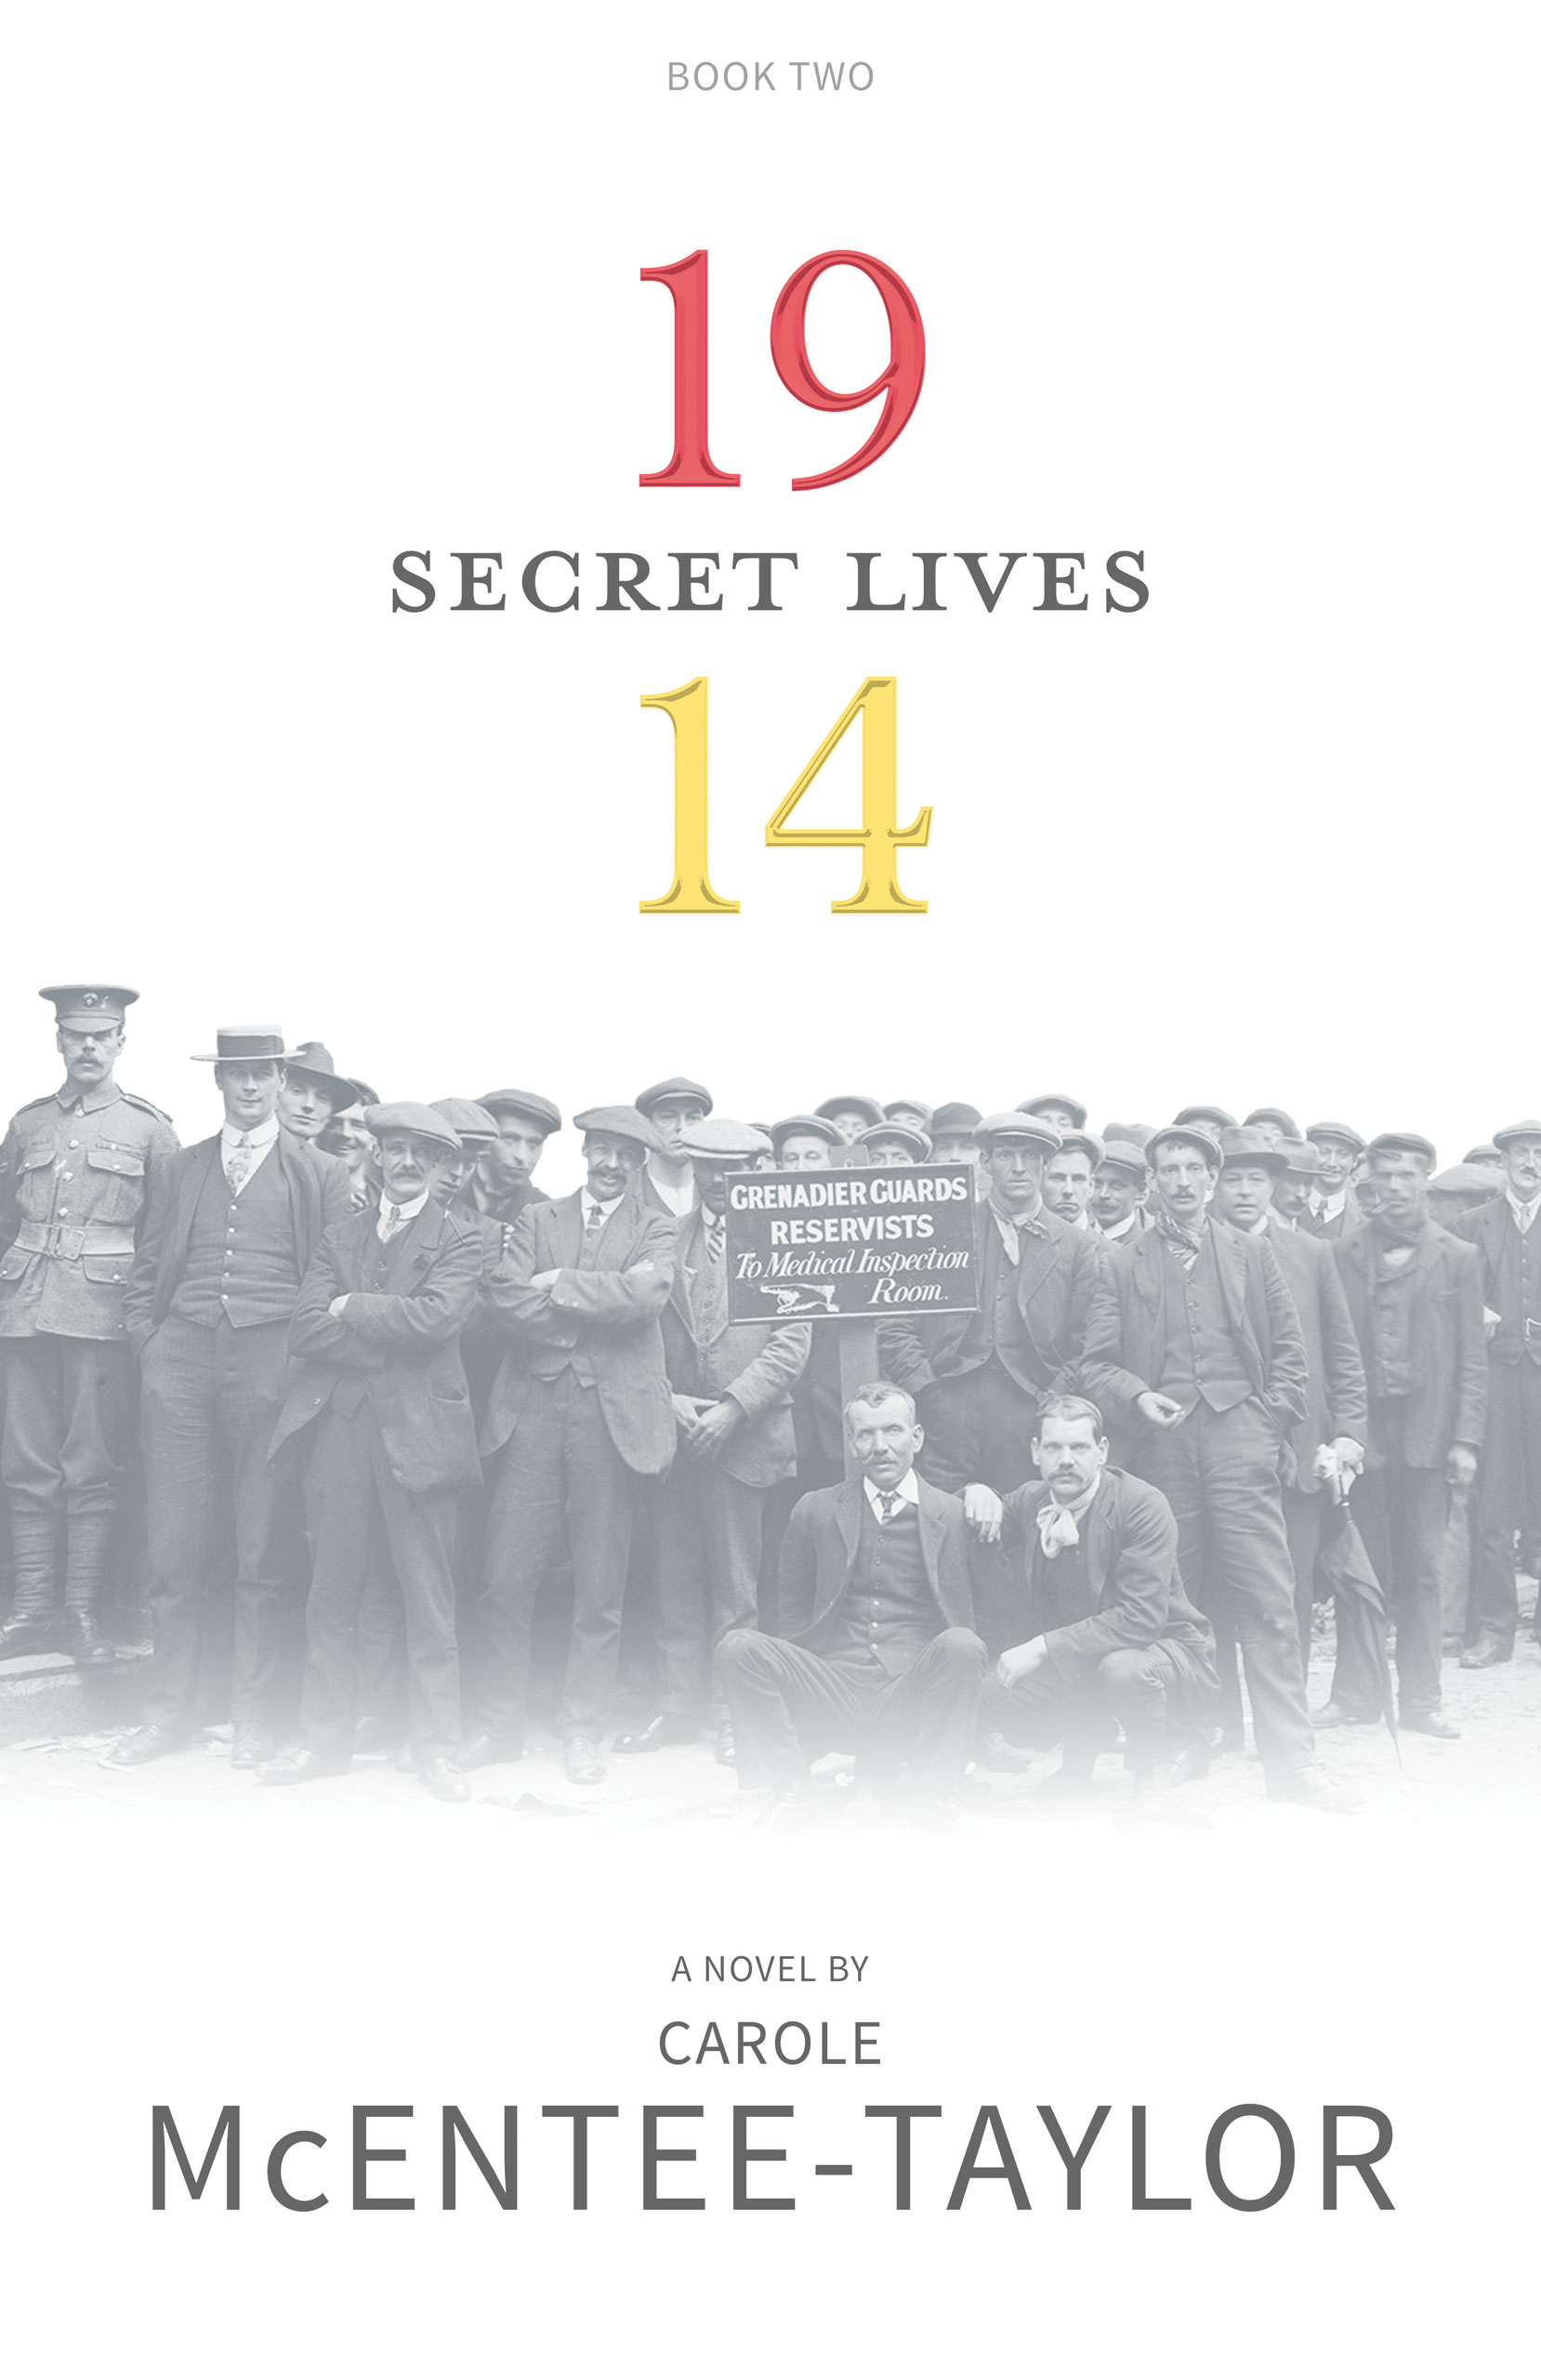 Secret Lives - 1914 Book Two by Carole McEntee-Taylor cover image.